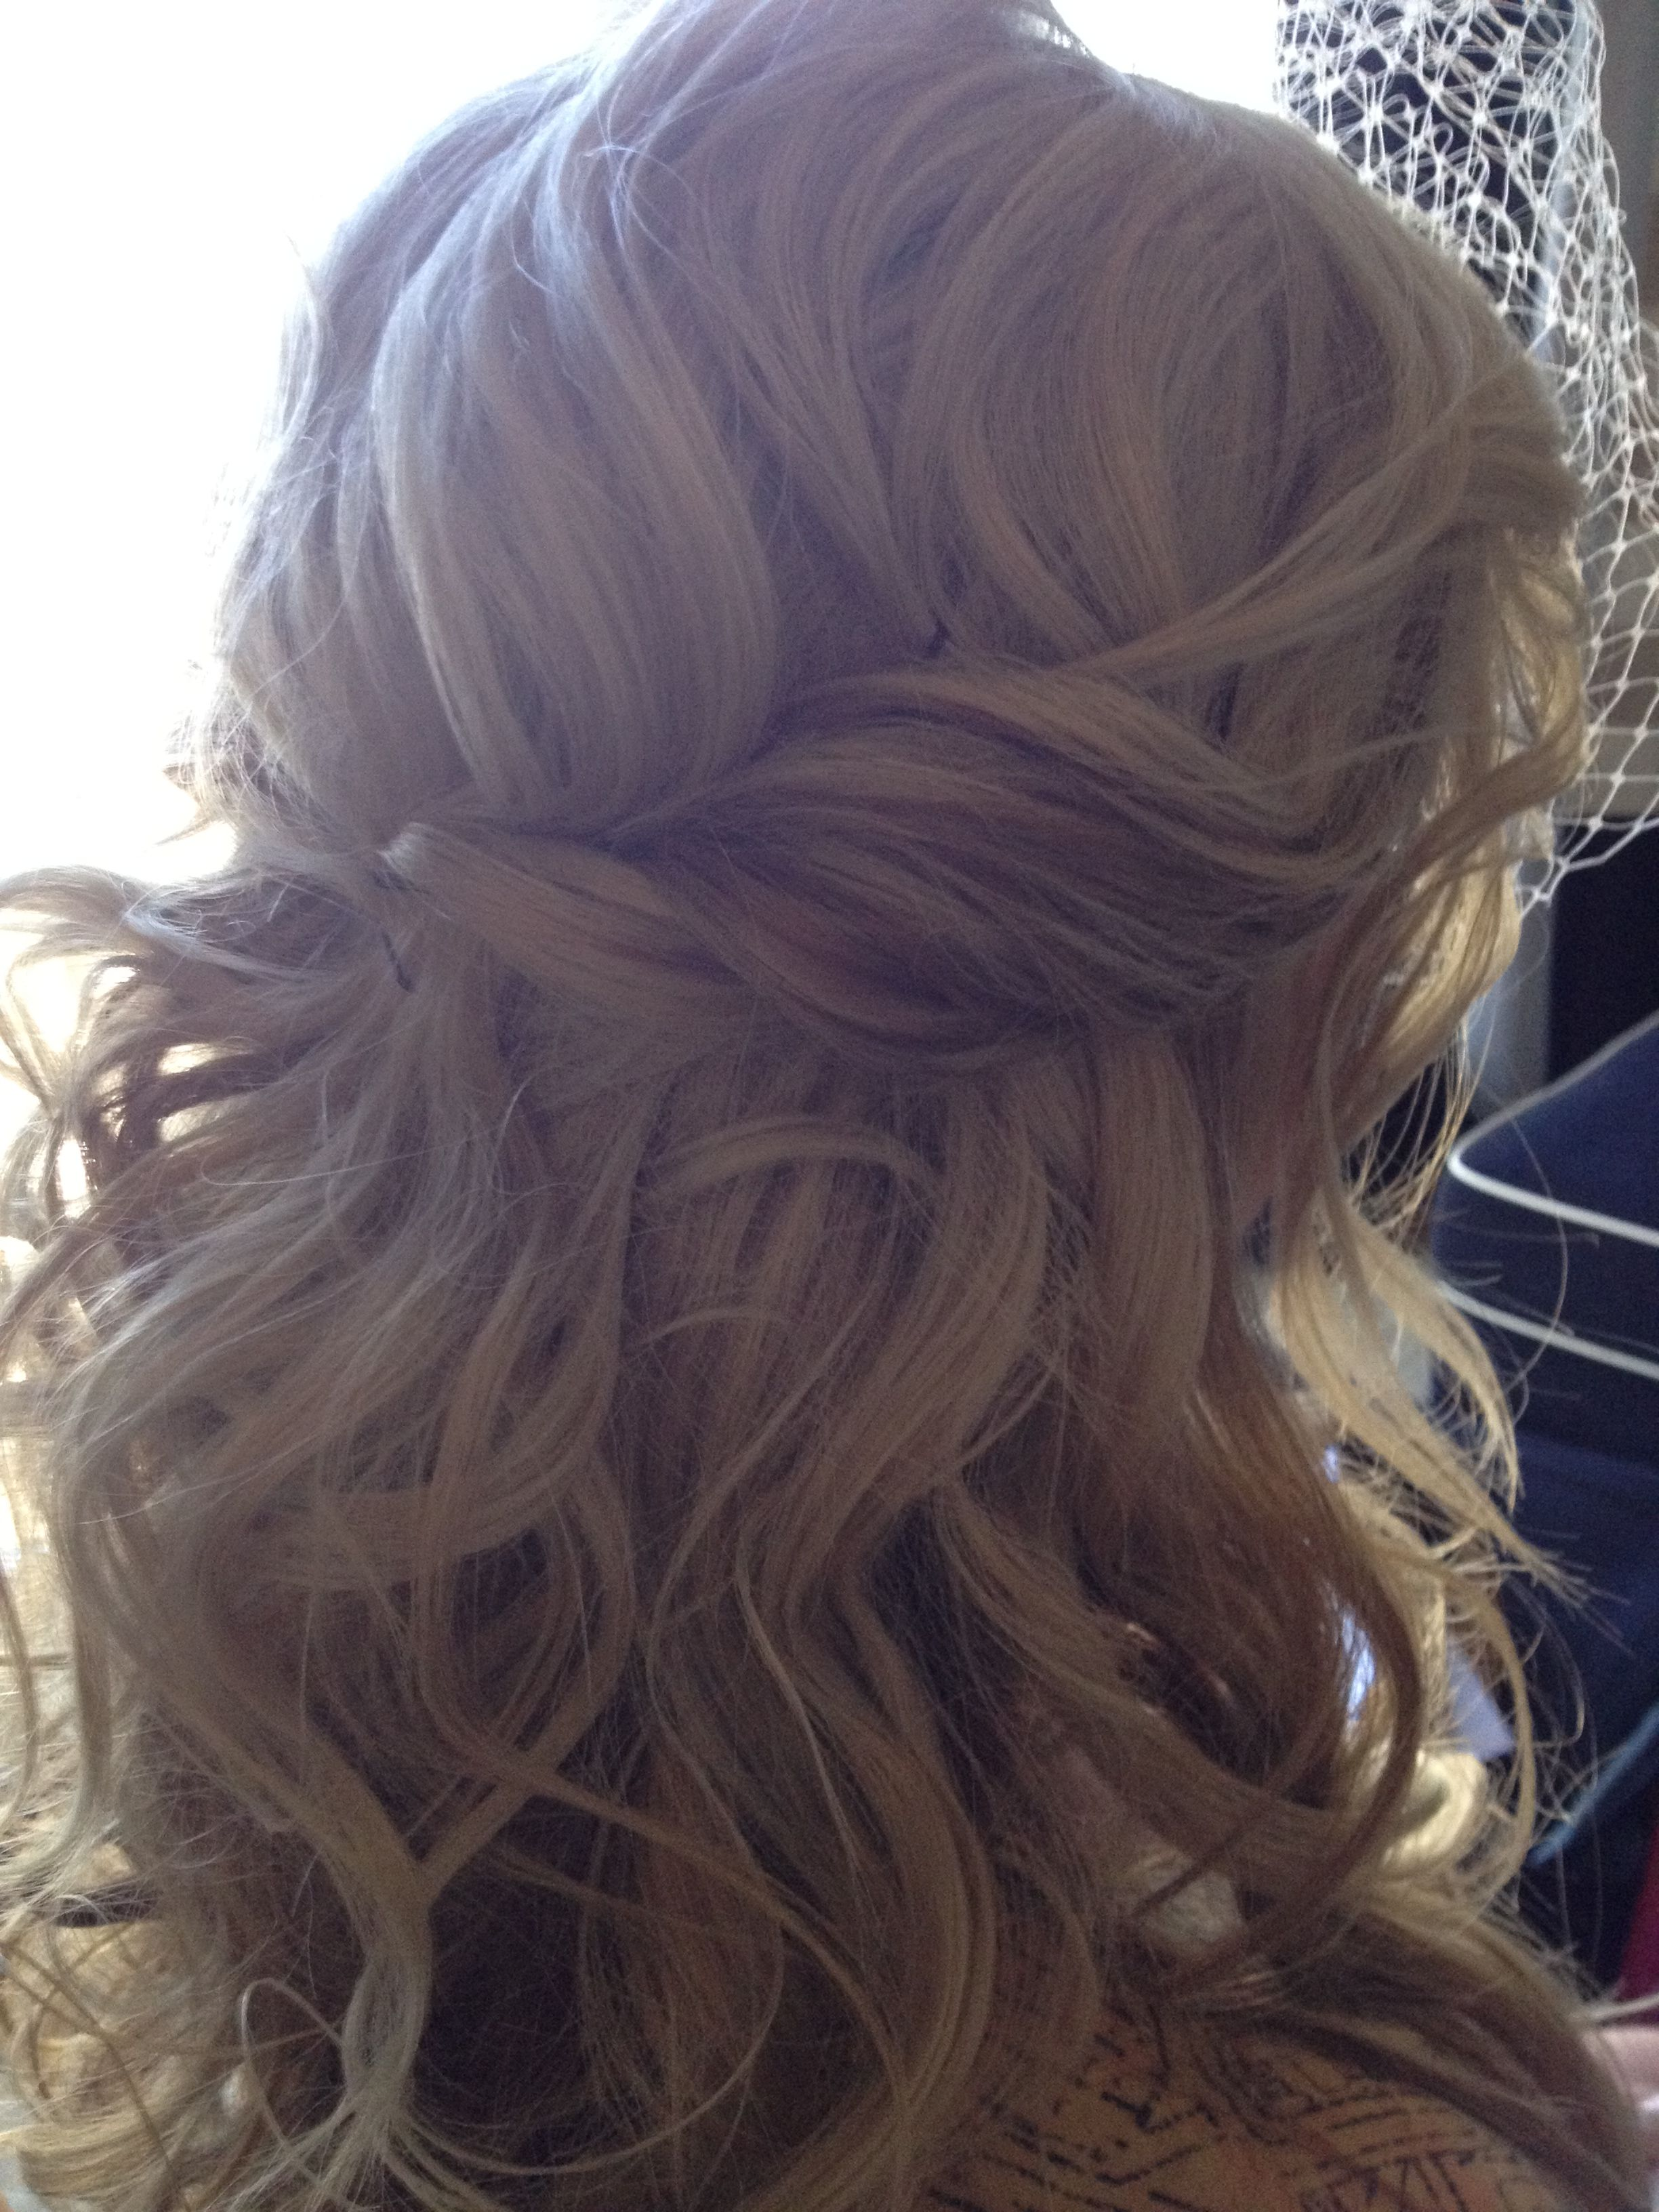 beautiful textured curly half-up, half-down hippy chic